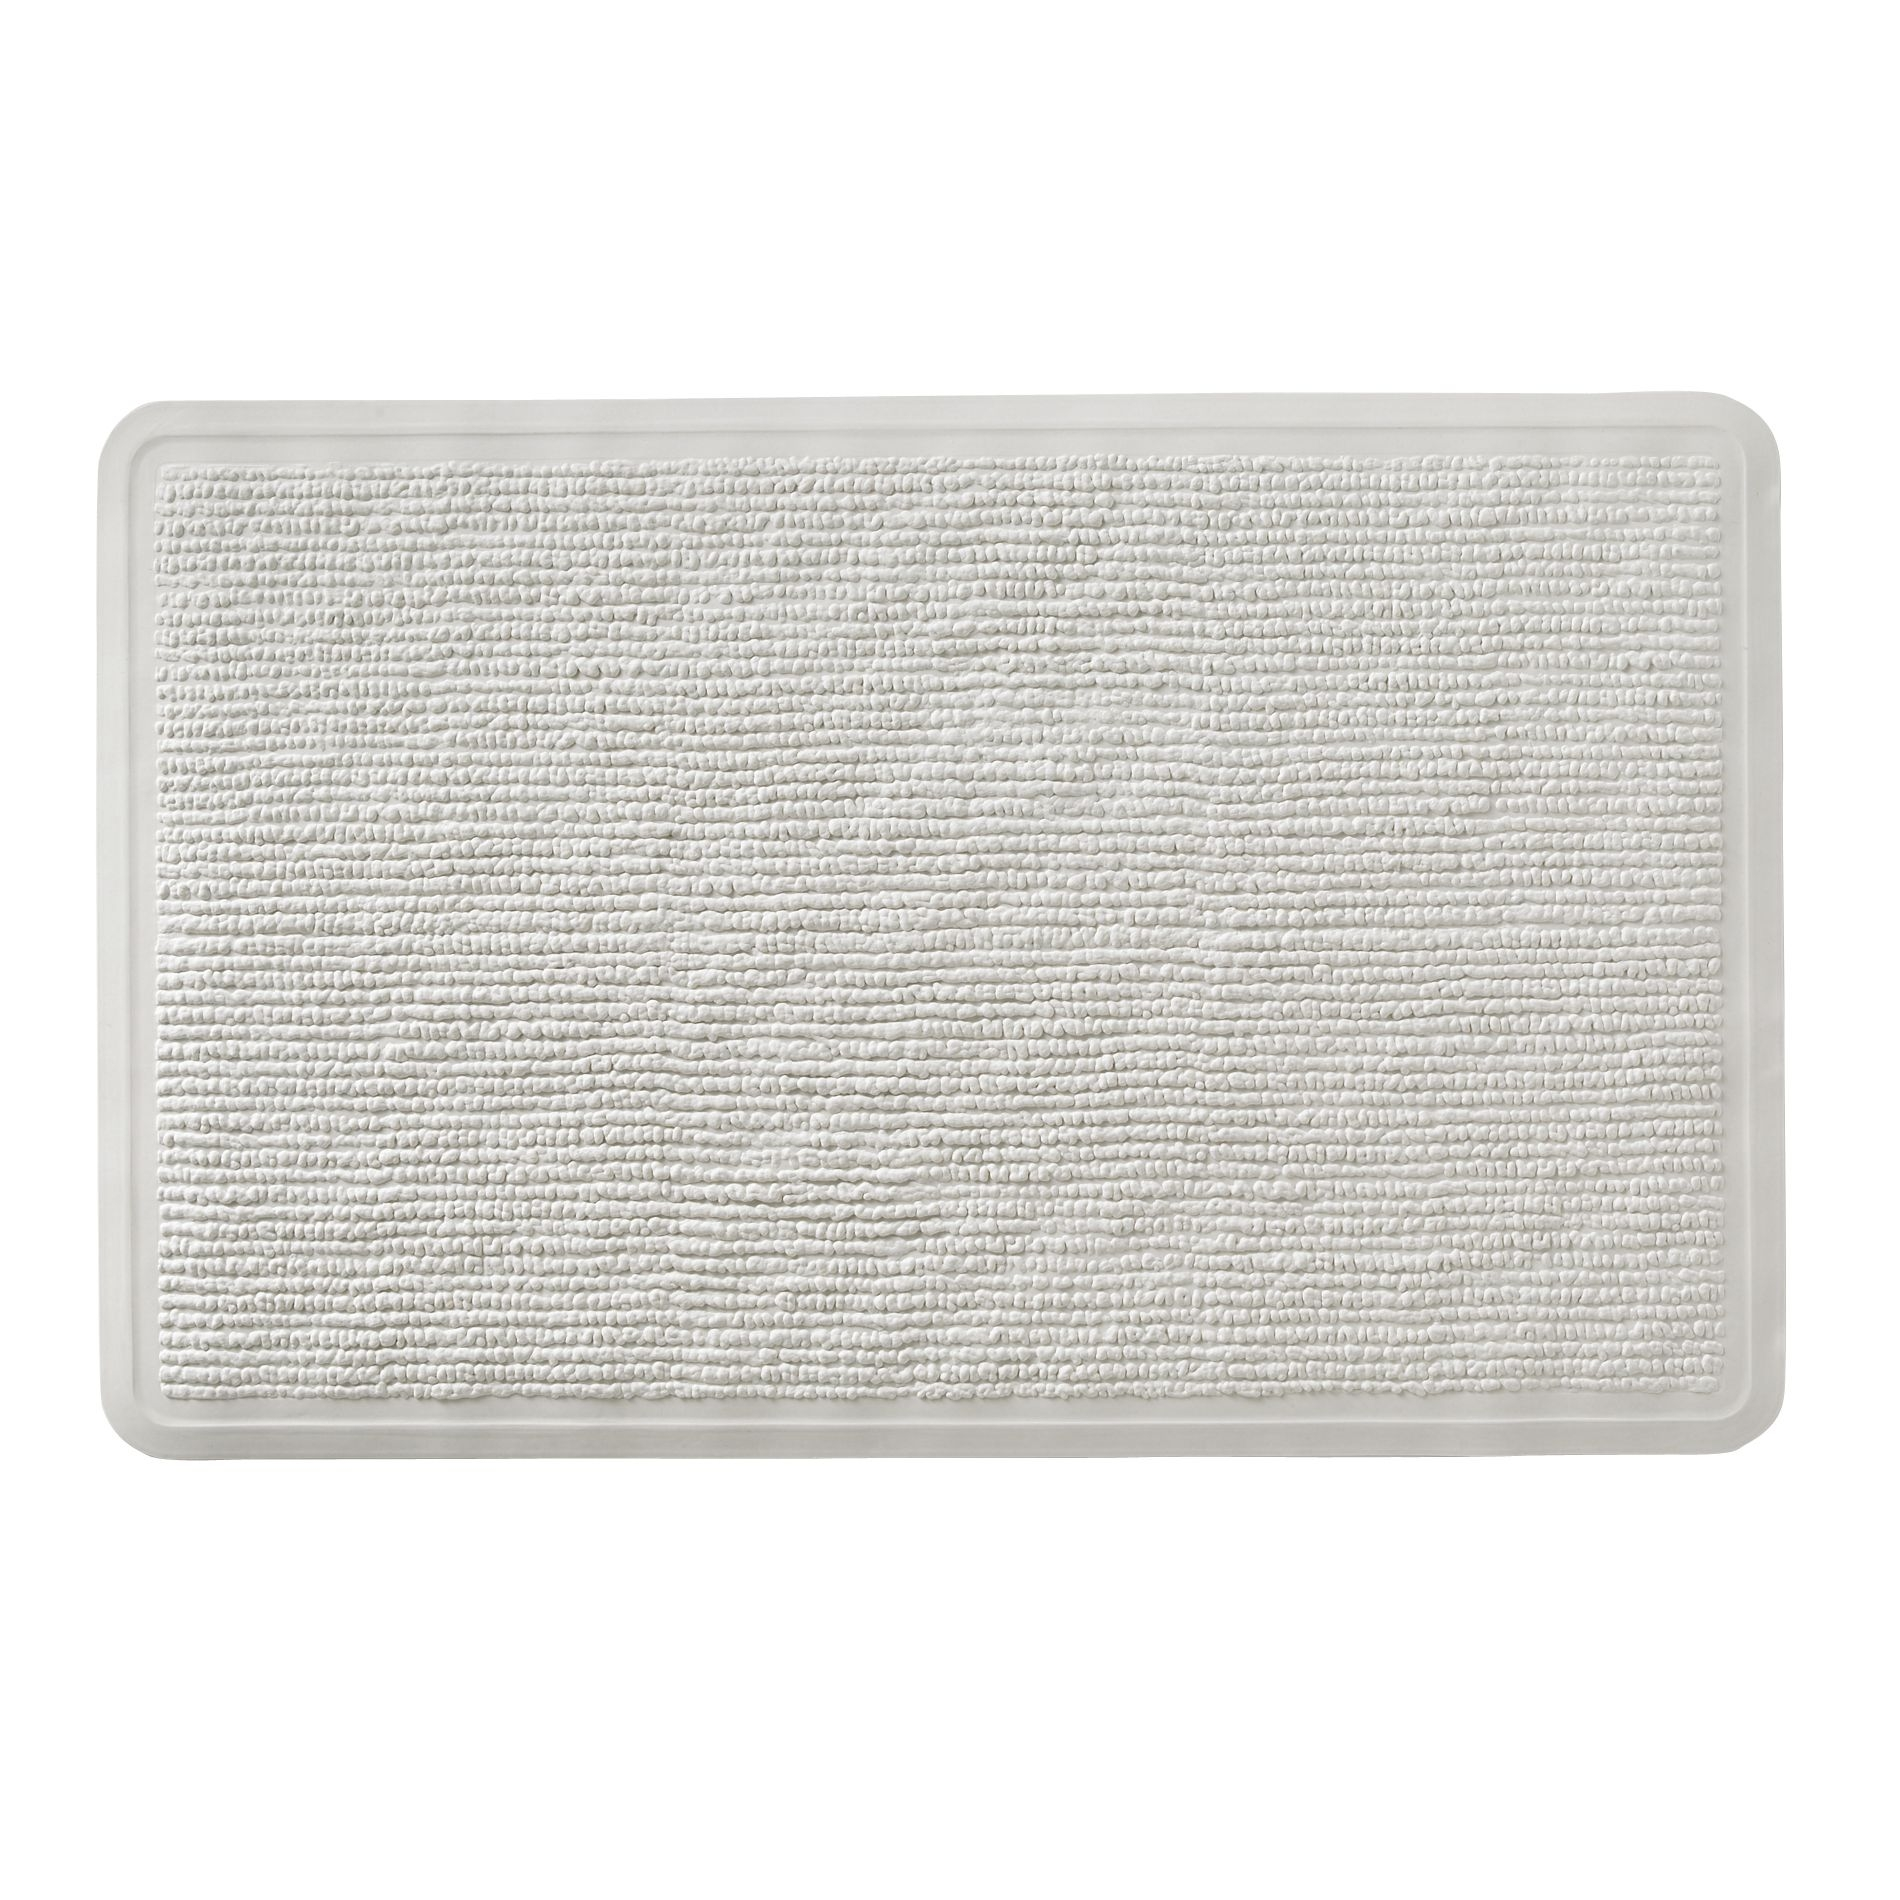 Rubber Backed White Bath Mats